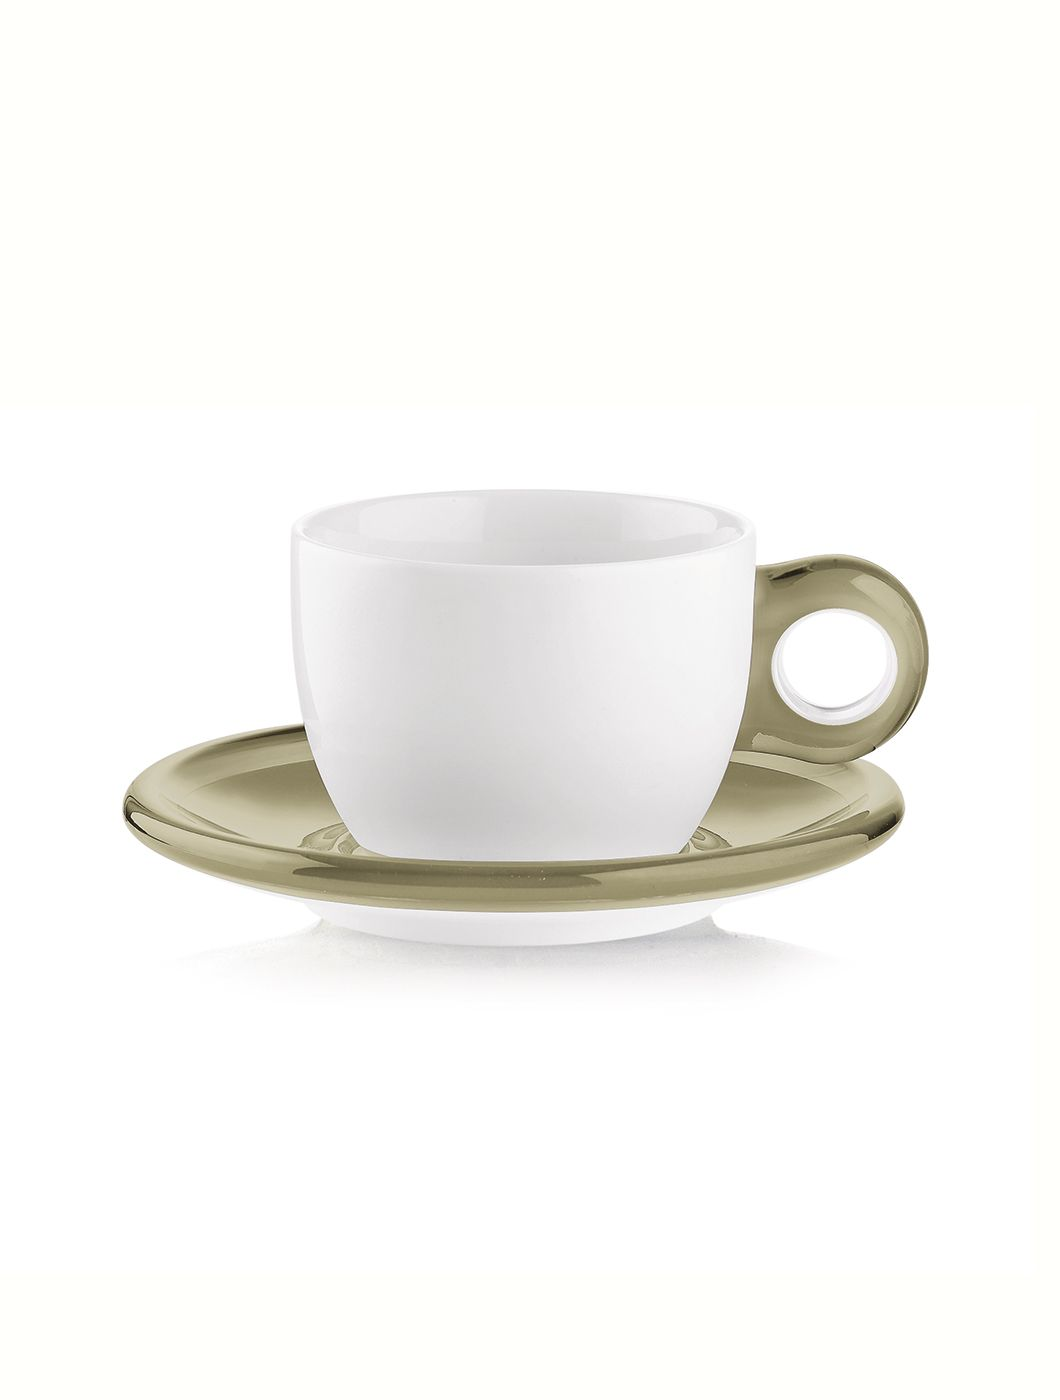 Set of 2 cappuccino cups with saucers Gocce